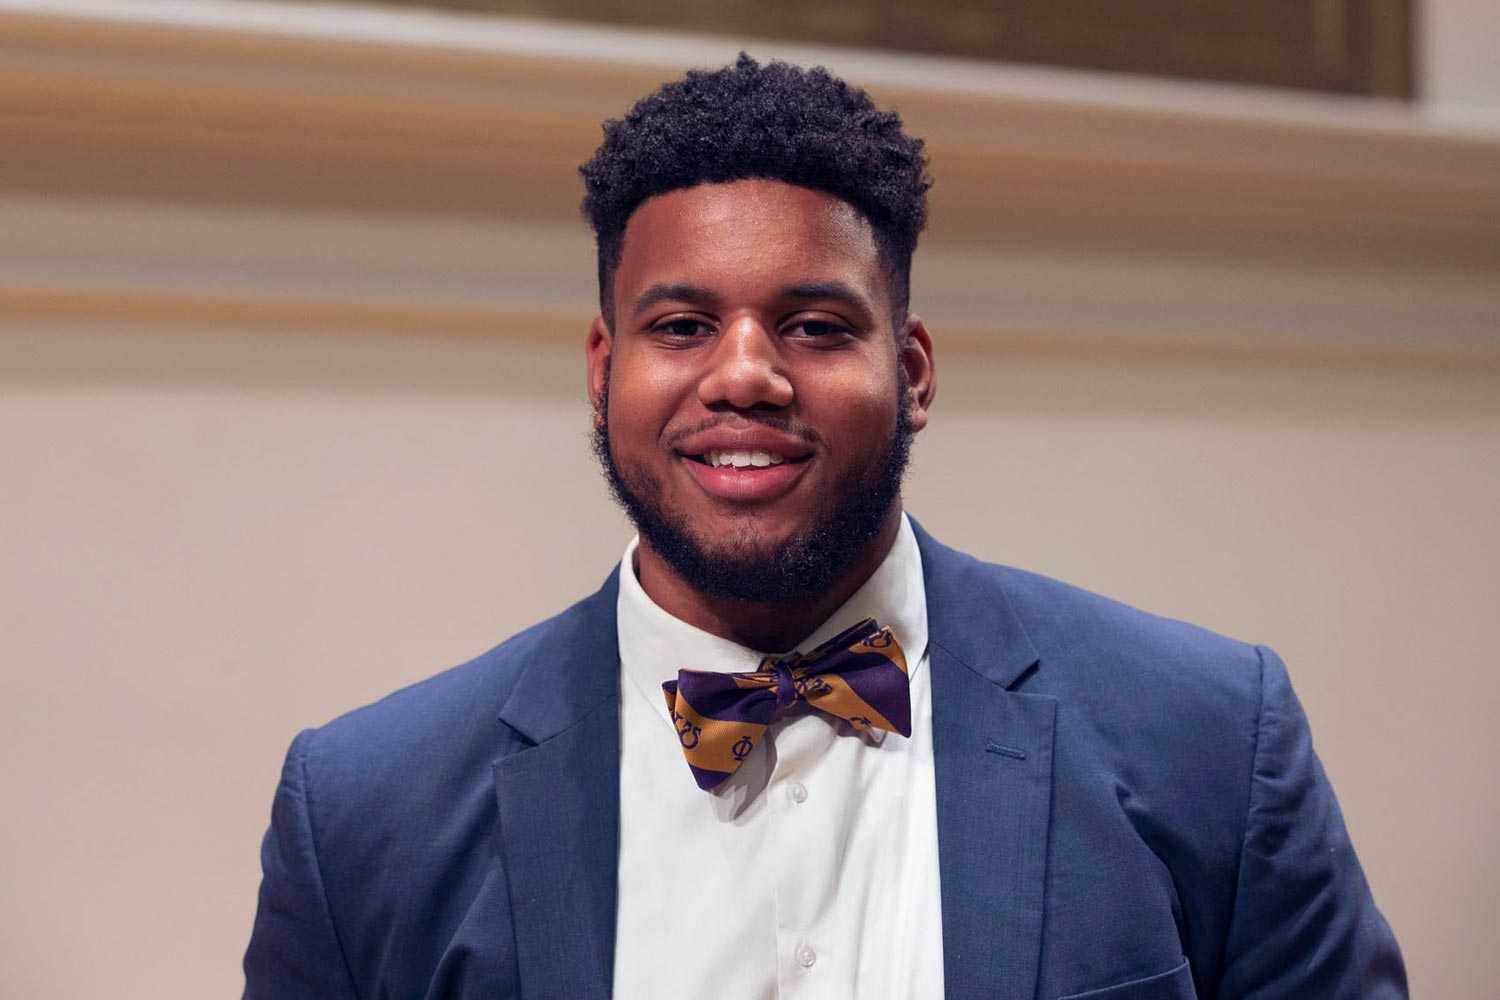 Miles Braxton, a fourth-year student from Richmond majoring in environmental sciences, helped bring Jesse Jackson to UVA.